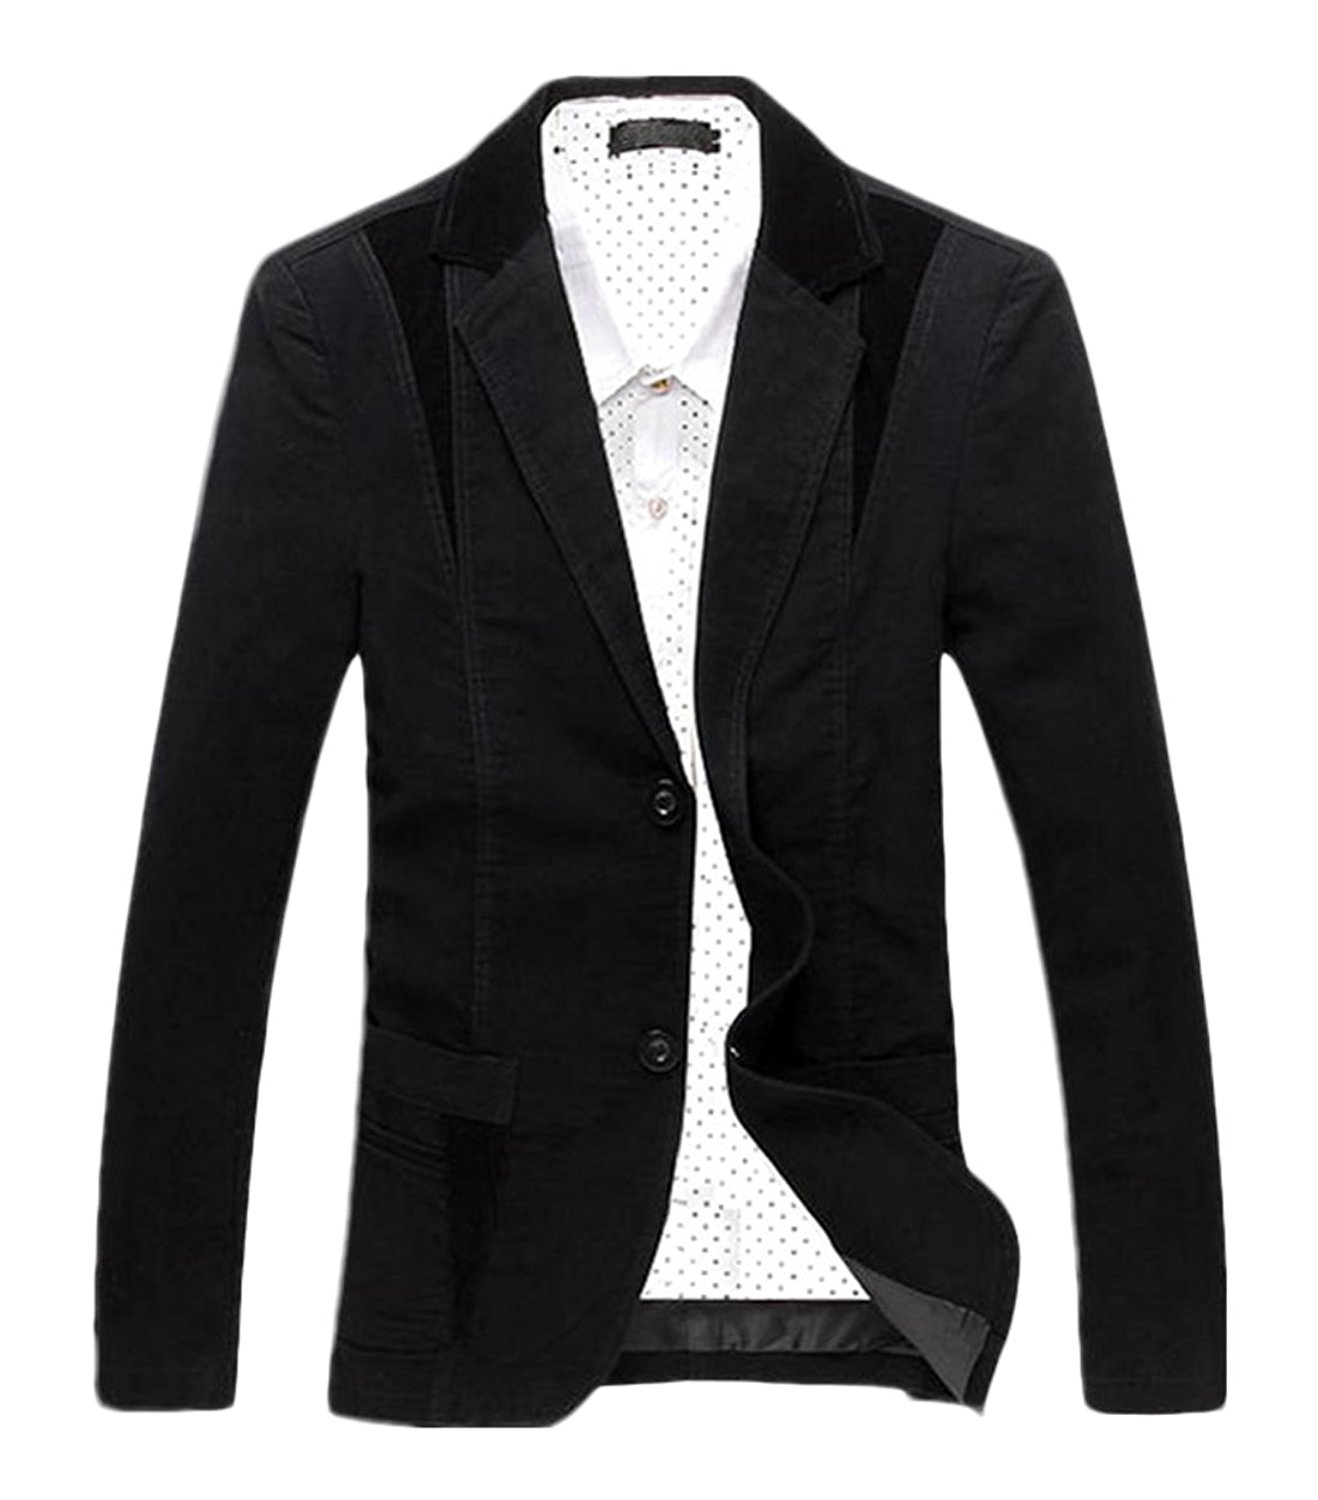 0e2407c4f Get Quotations · Chartou Men's Casual Western-Style Lightweight Slim  Two-Buttons Cotton Suit Blazers Jacket